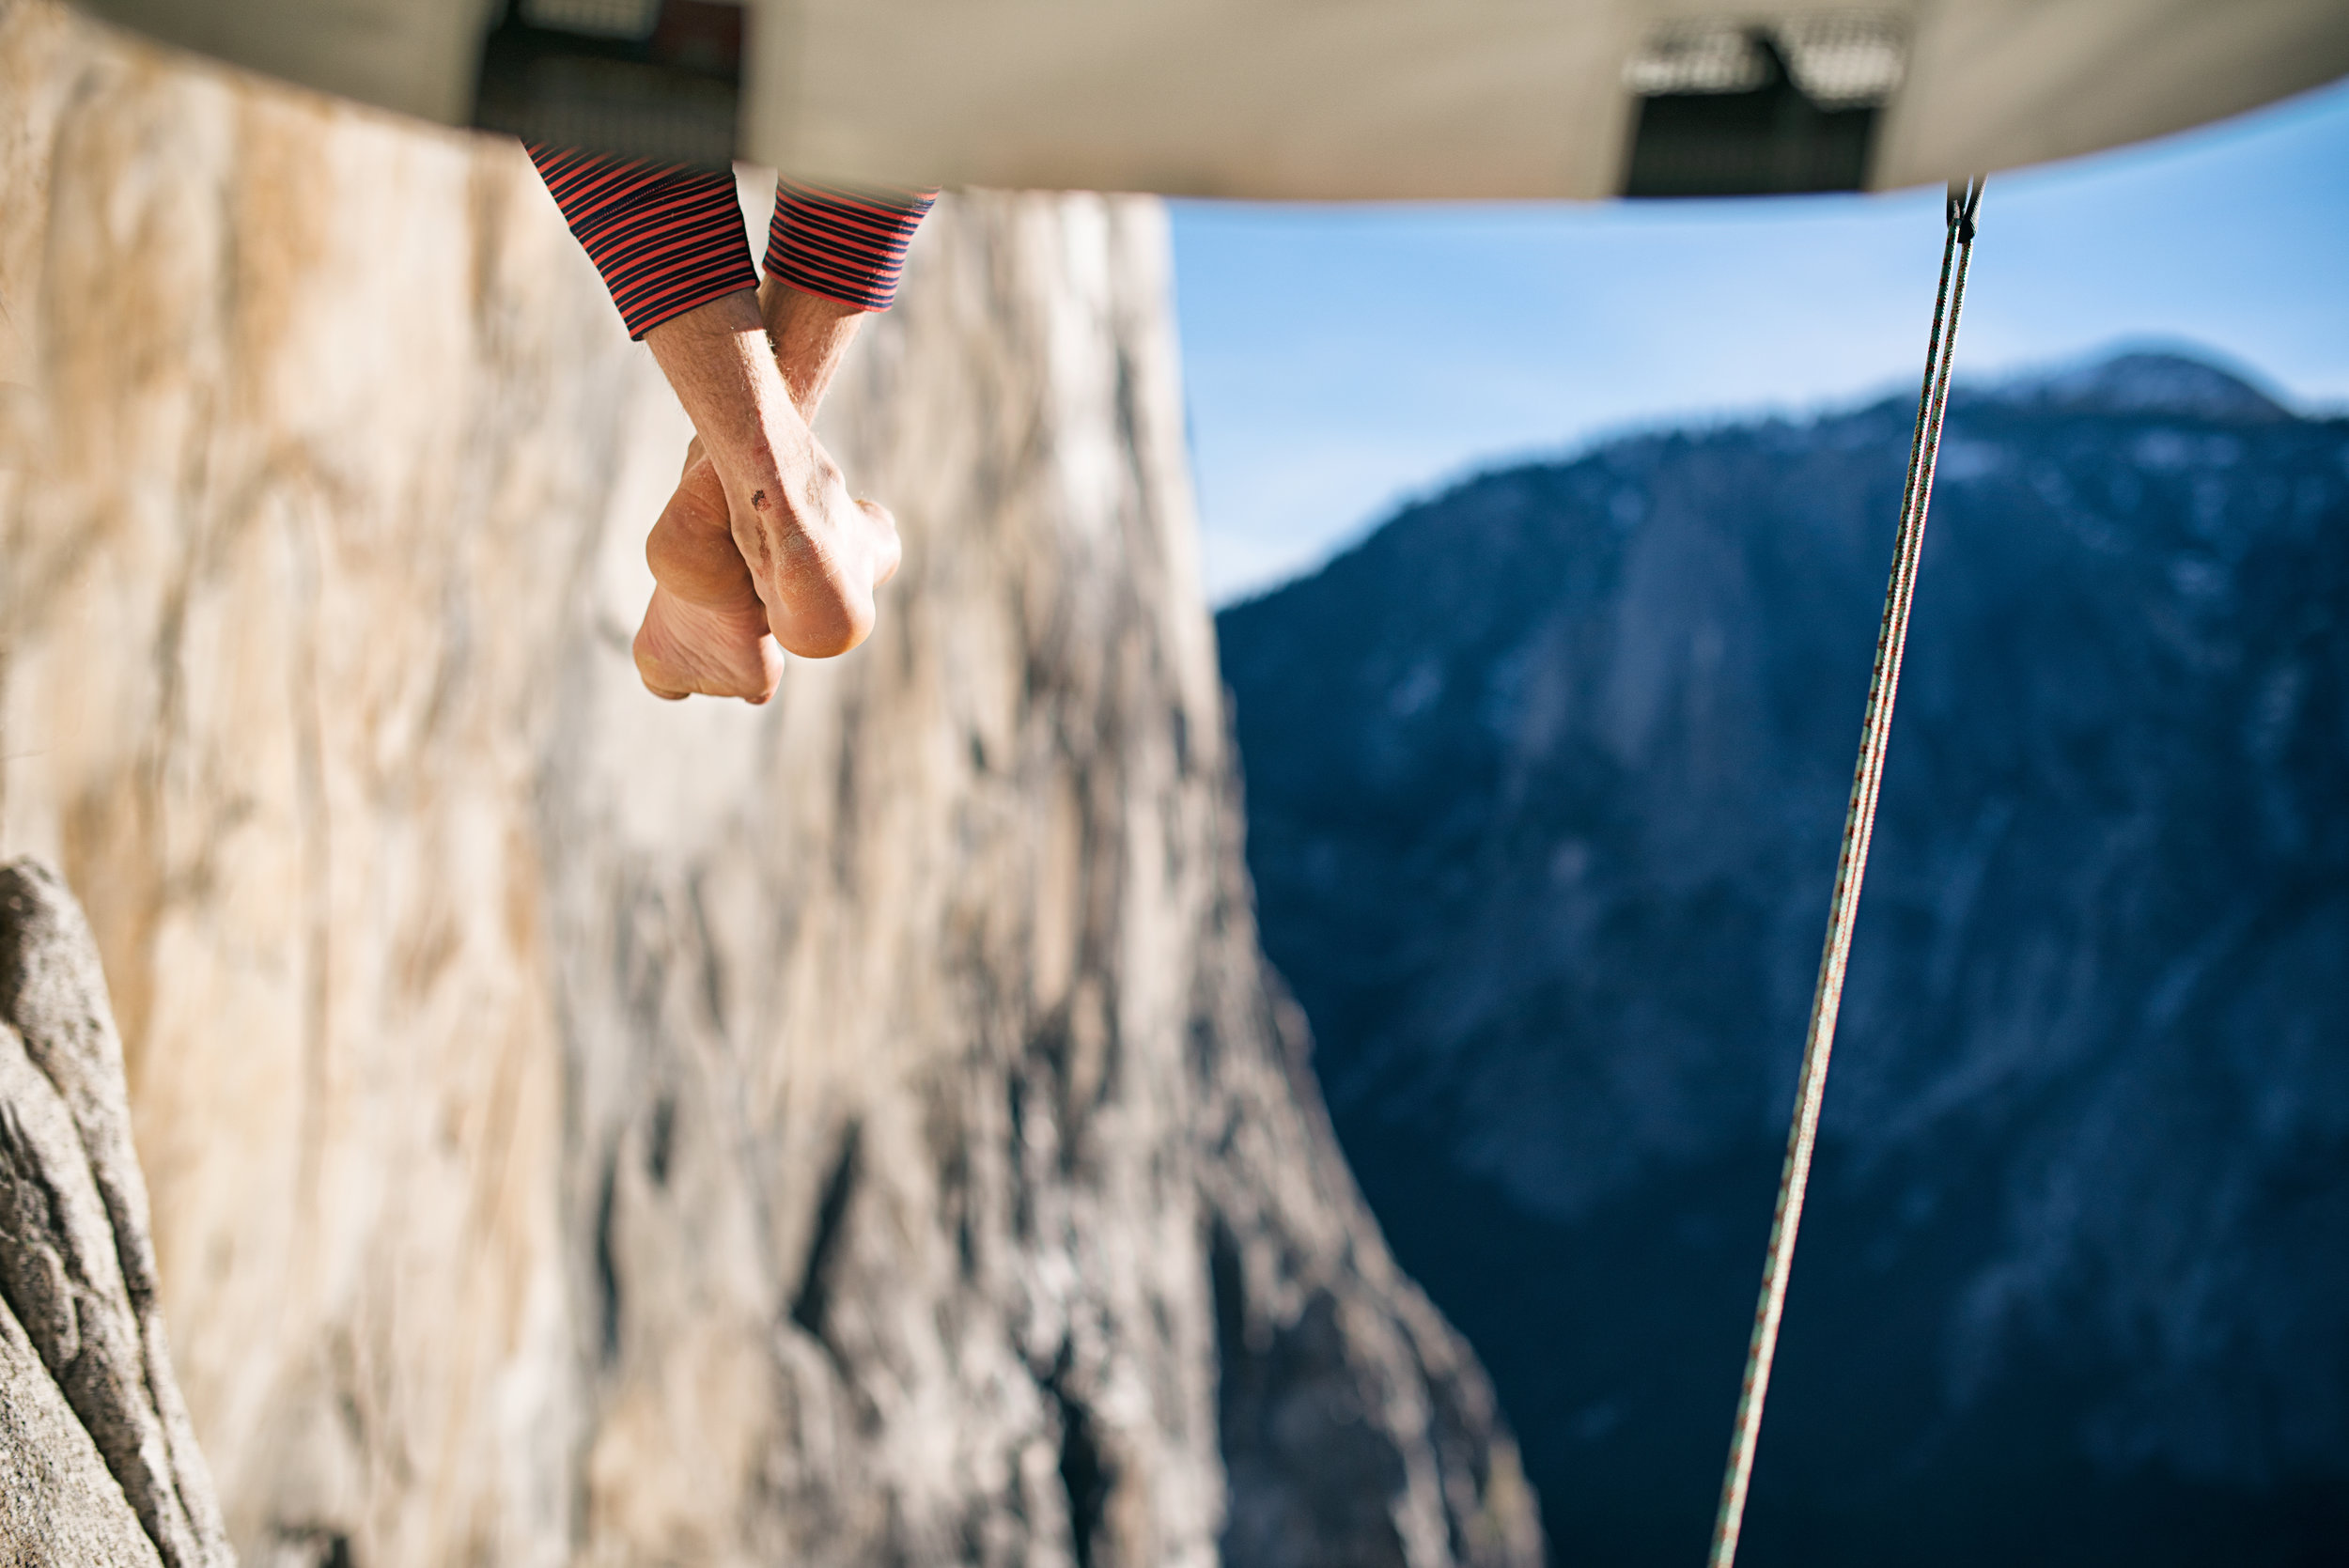 Tommy Caldwell — Dawn Wall, El Capitan, Yosemite, California